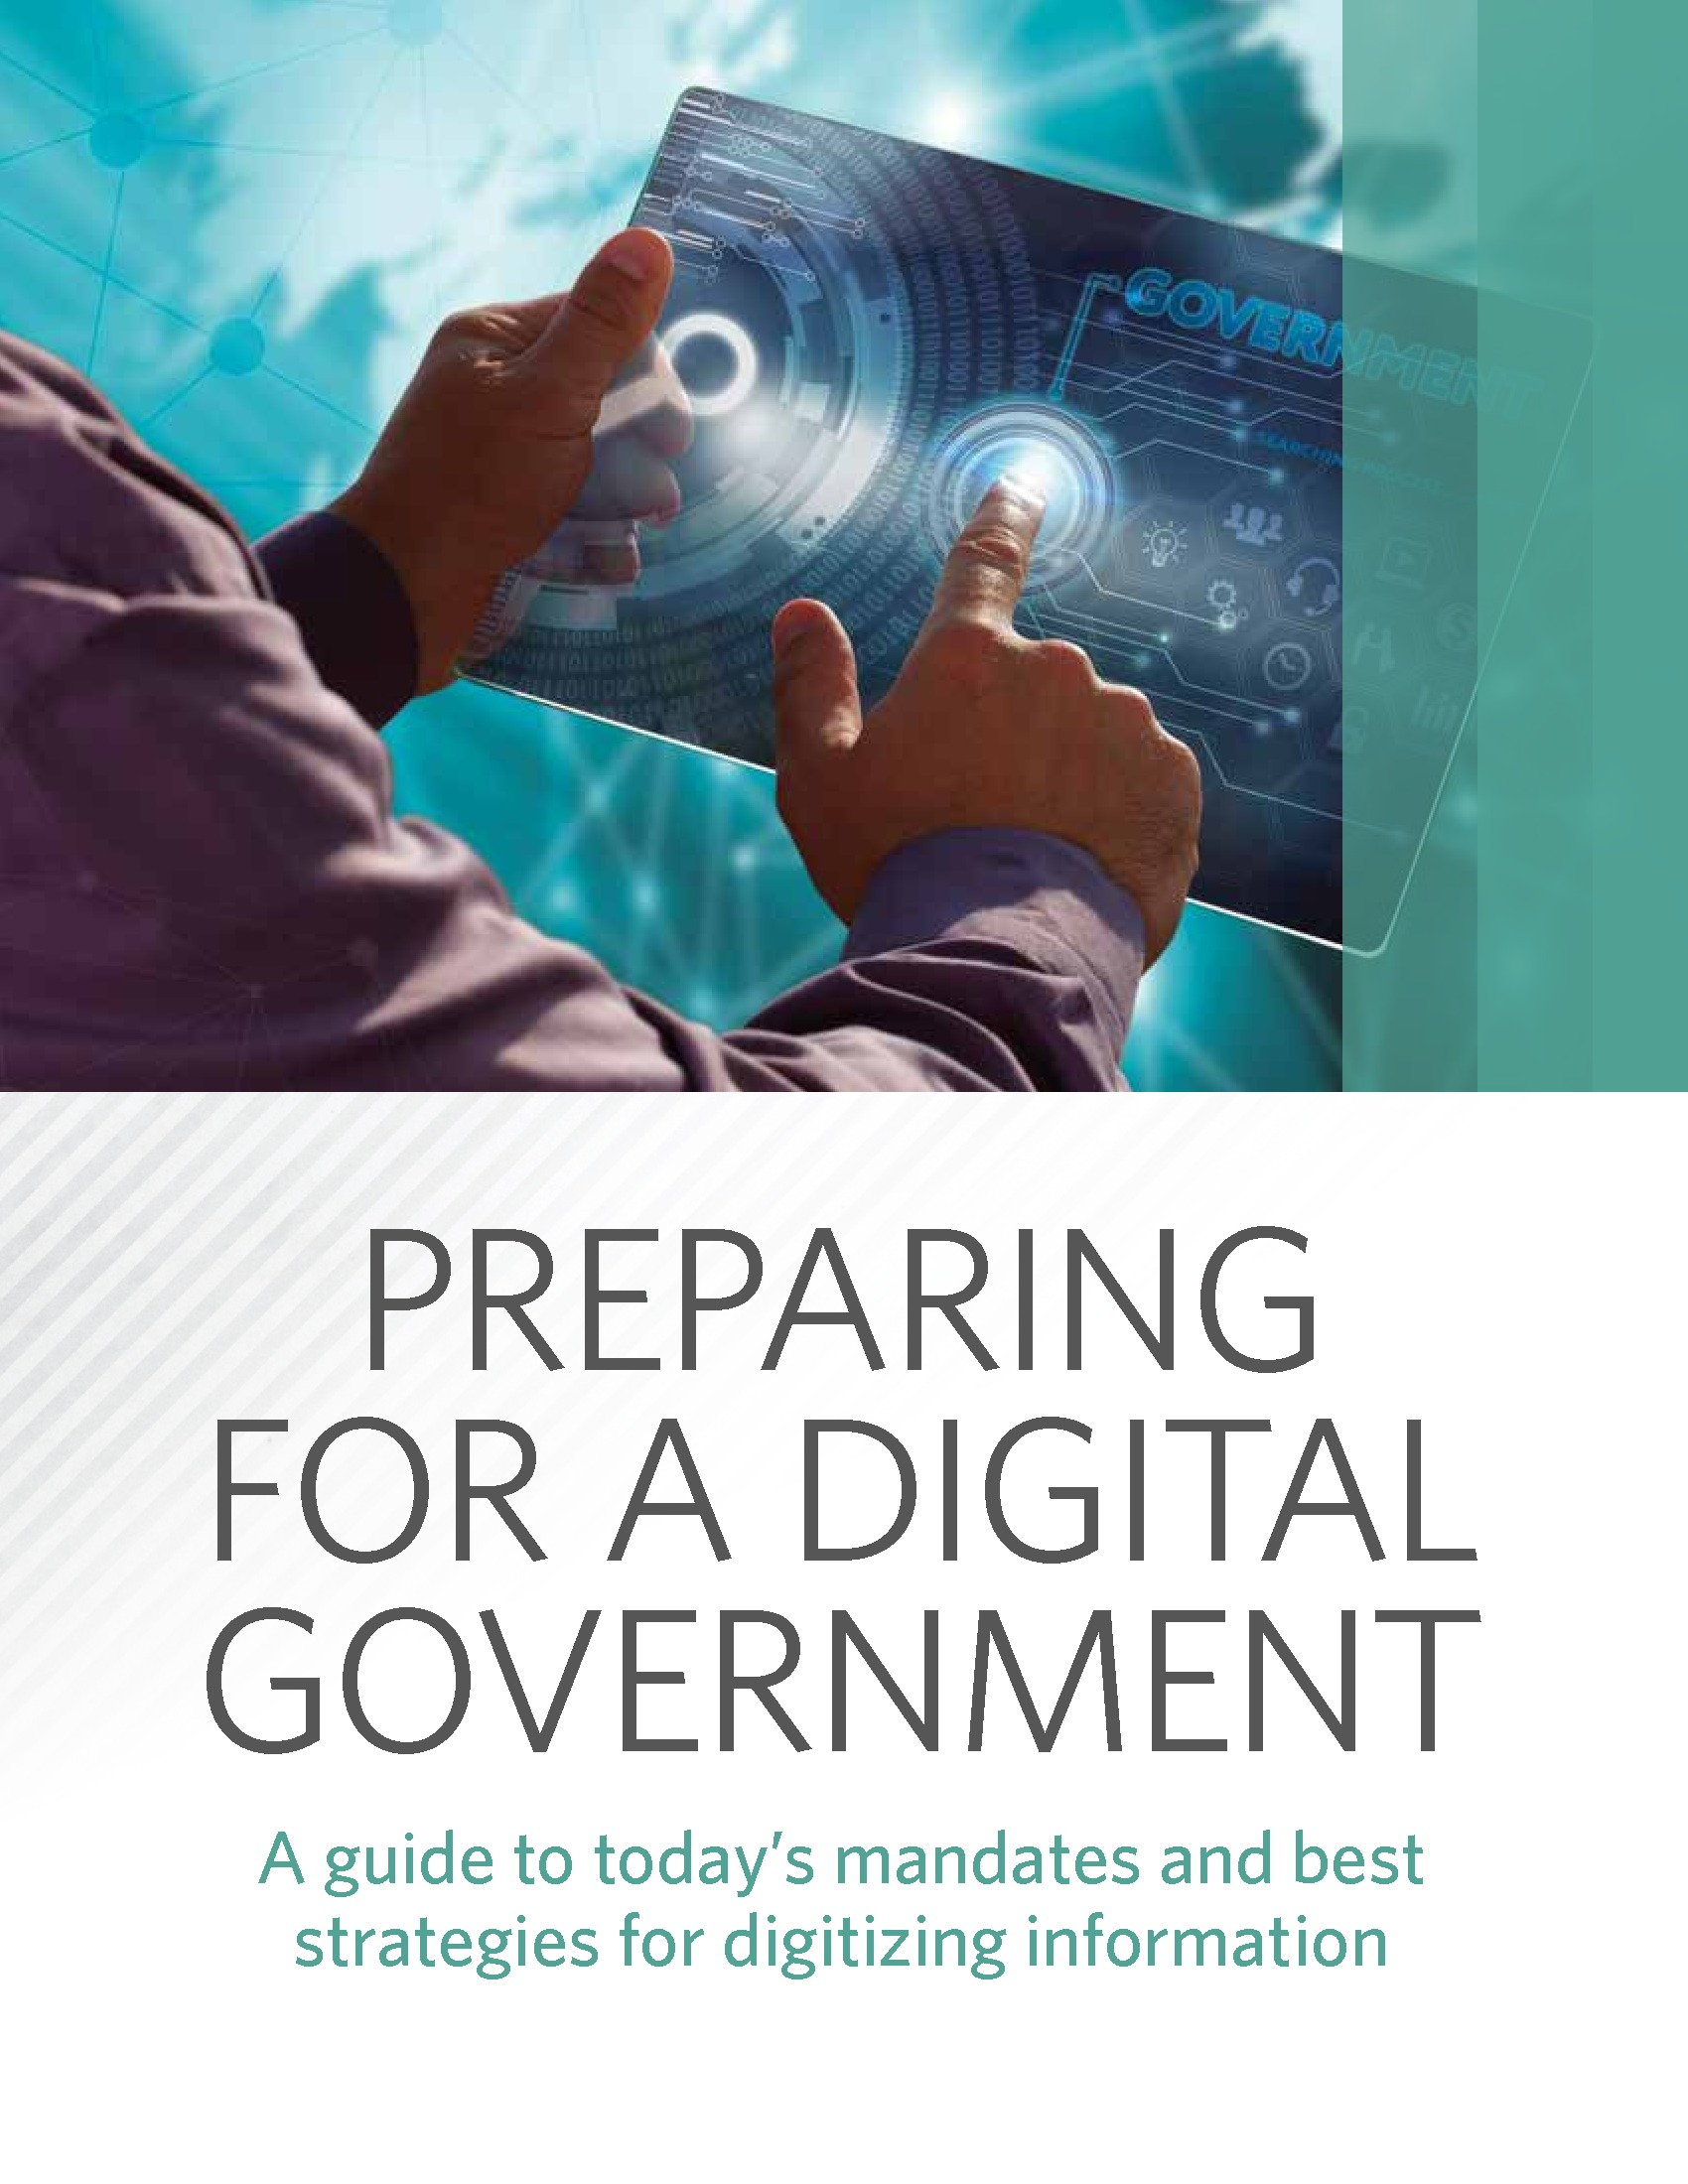 Preparing for a Digital Government: A Guide to Today's Mandates and Best Strategies for Digitizing Information